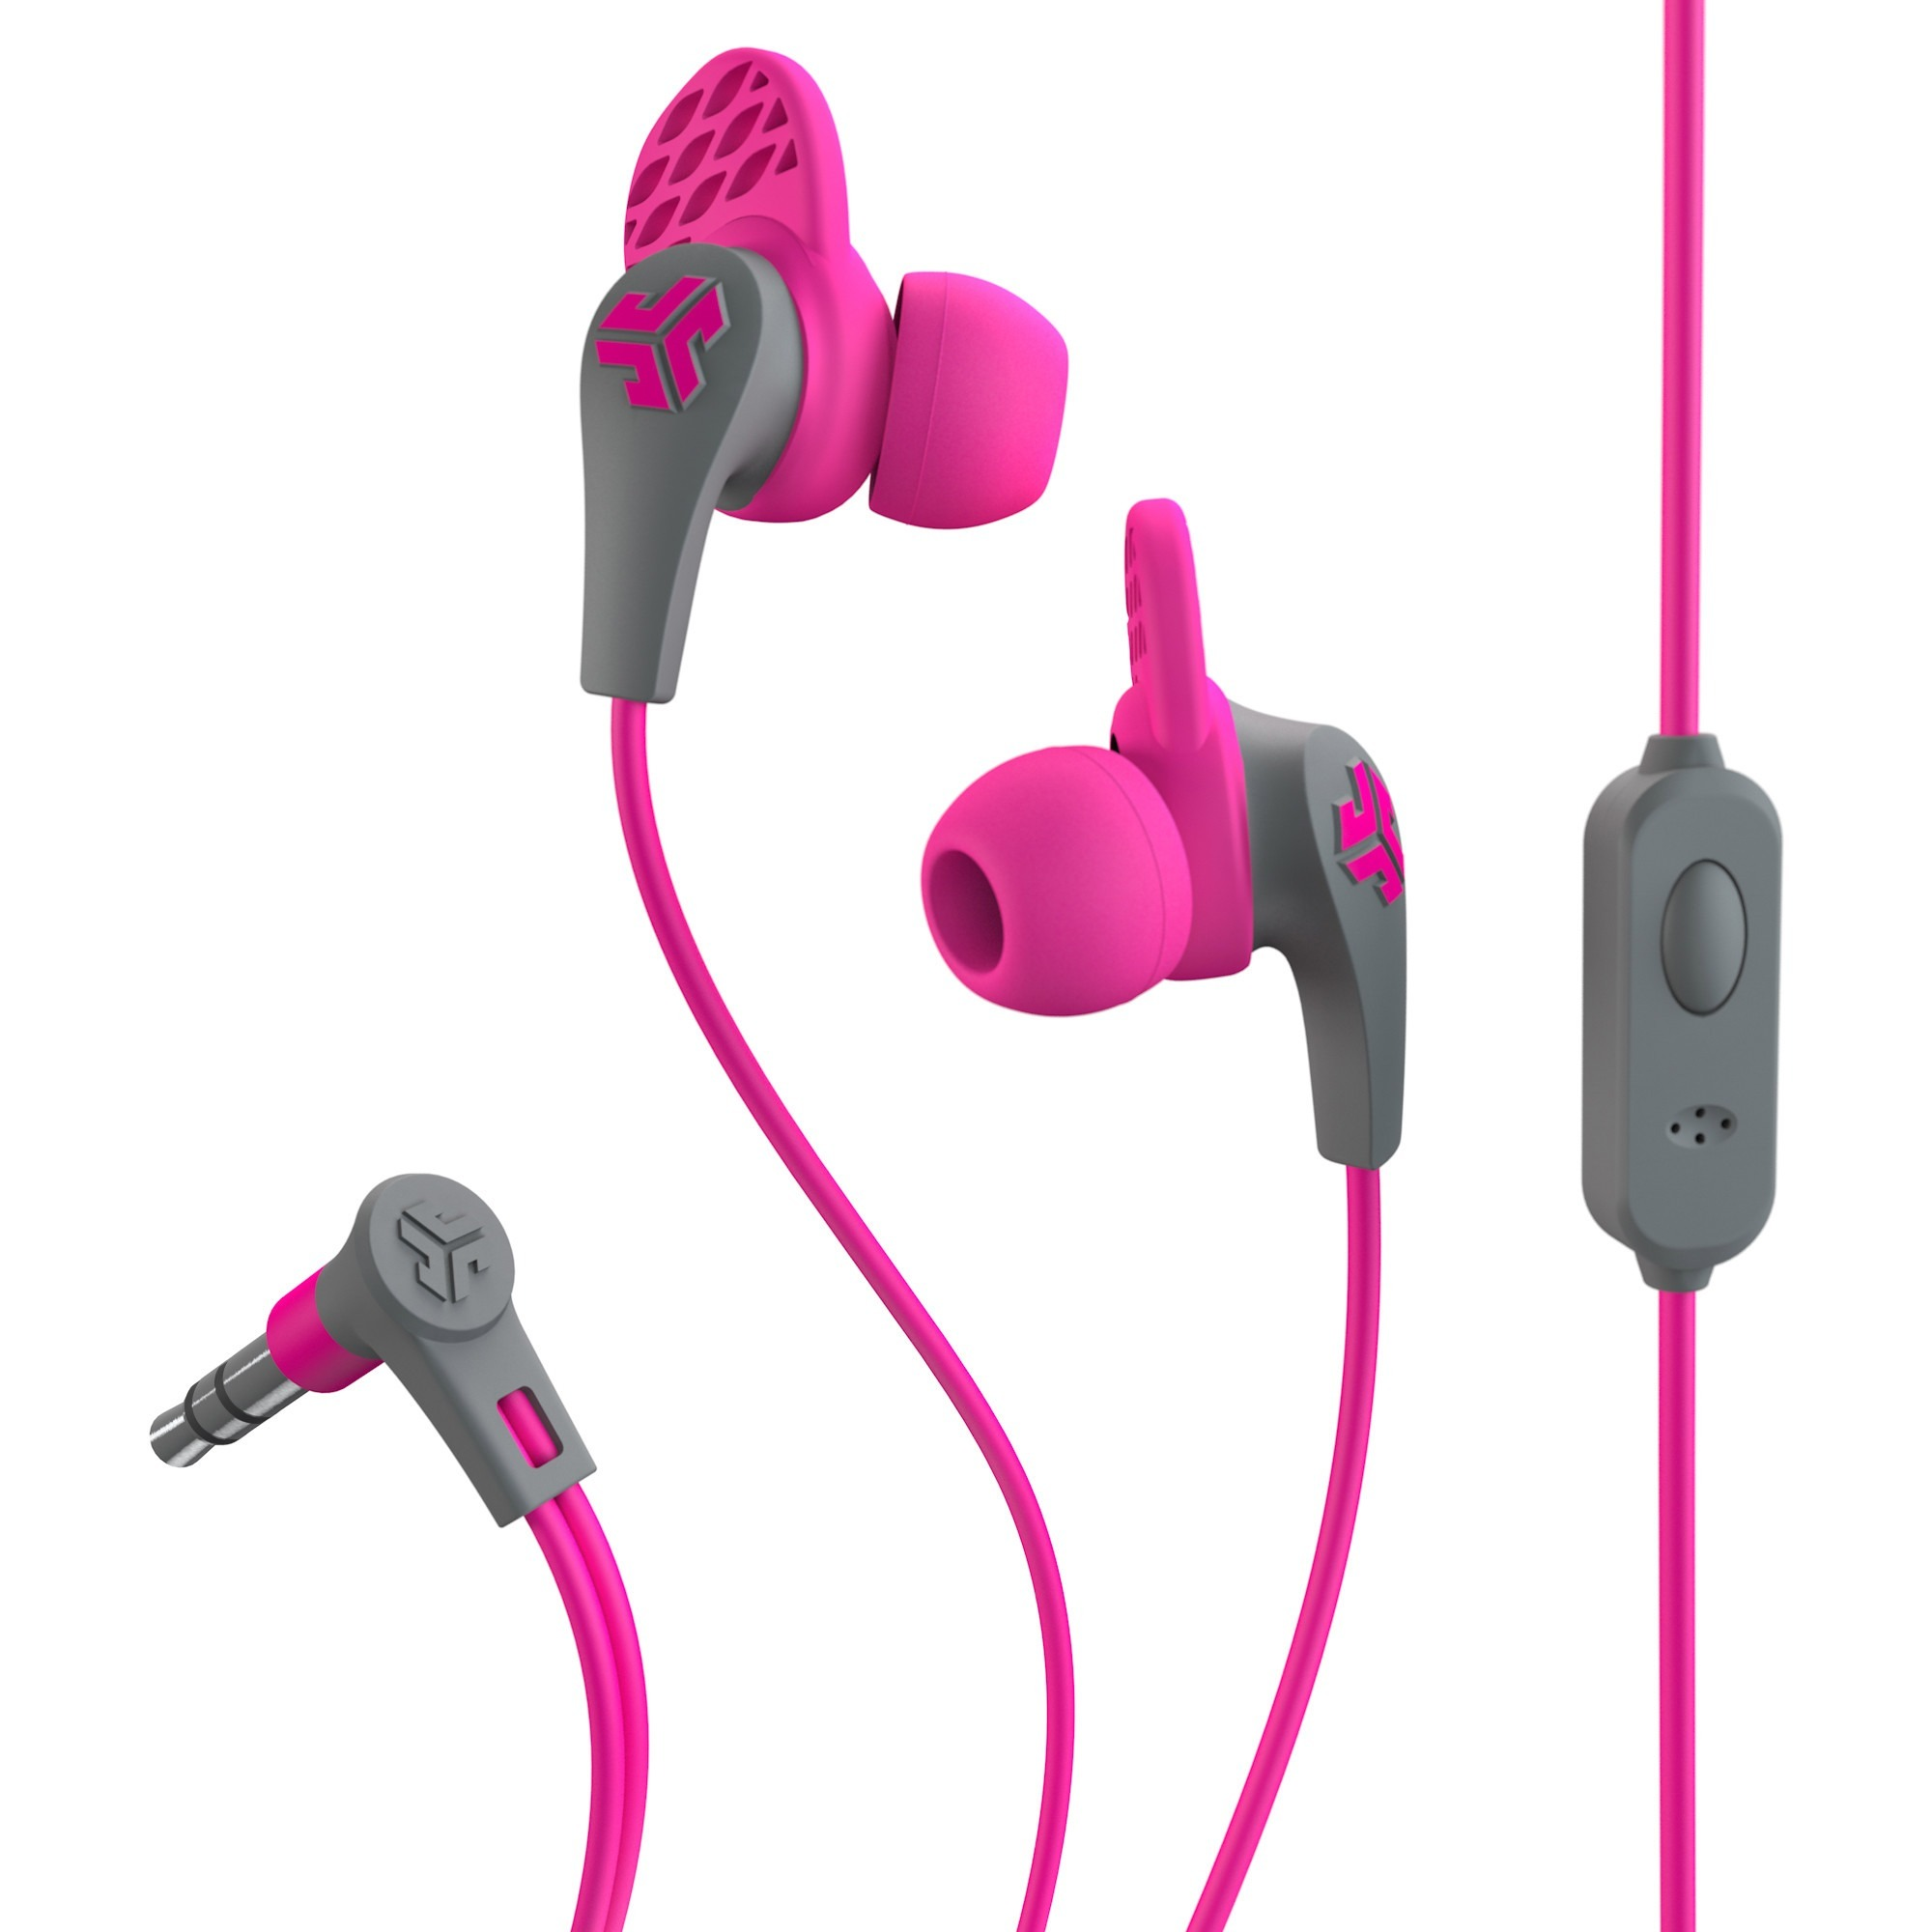 JLab JBuds Pro Signature Earbuds - Stereo - Pink - Mini-phone - Wired - Nickel Plated - Earbud - Binaural - In-ear - 4 ft Cable